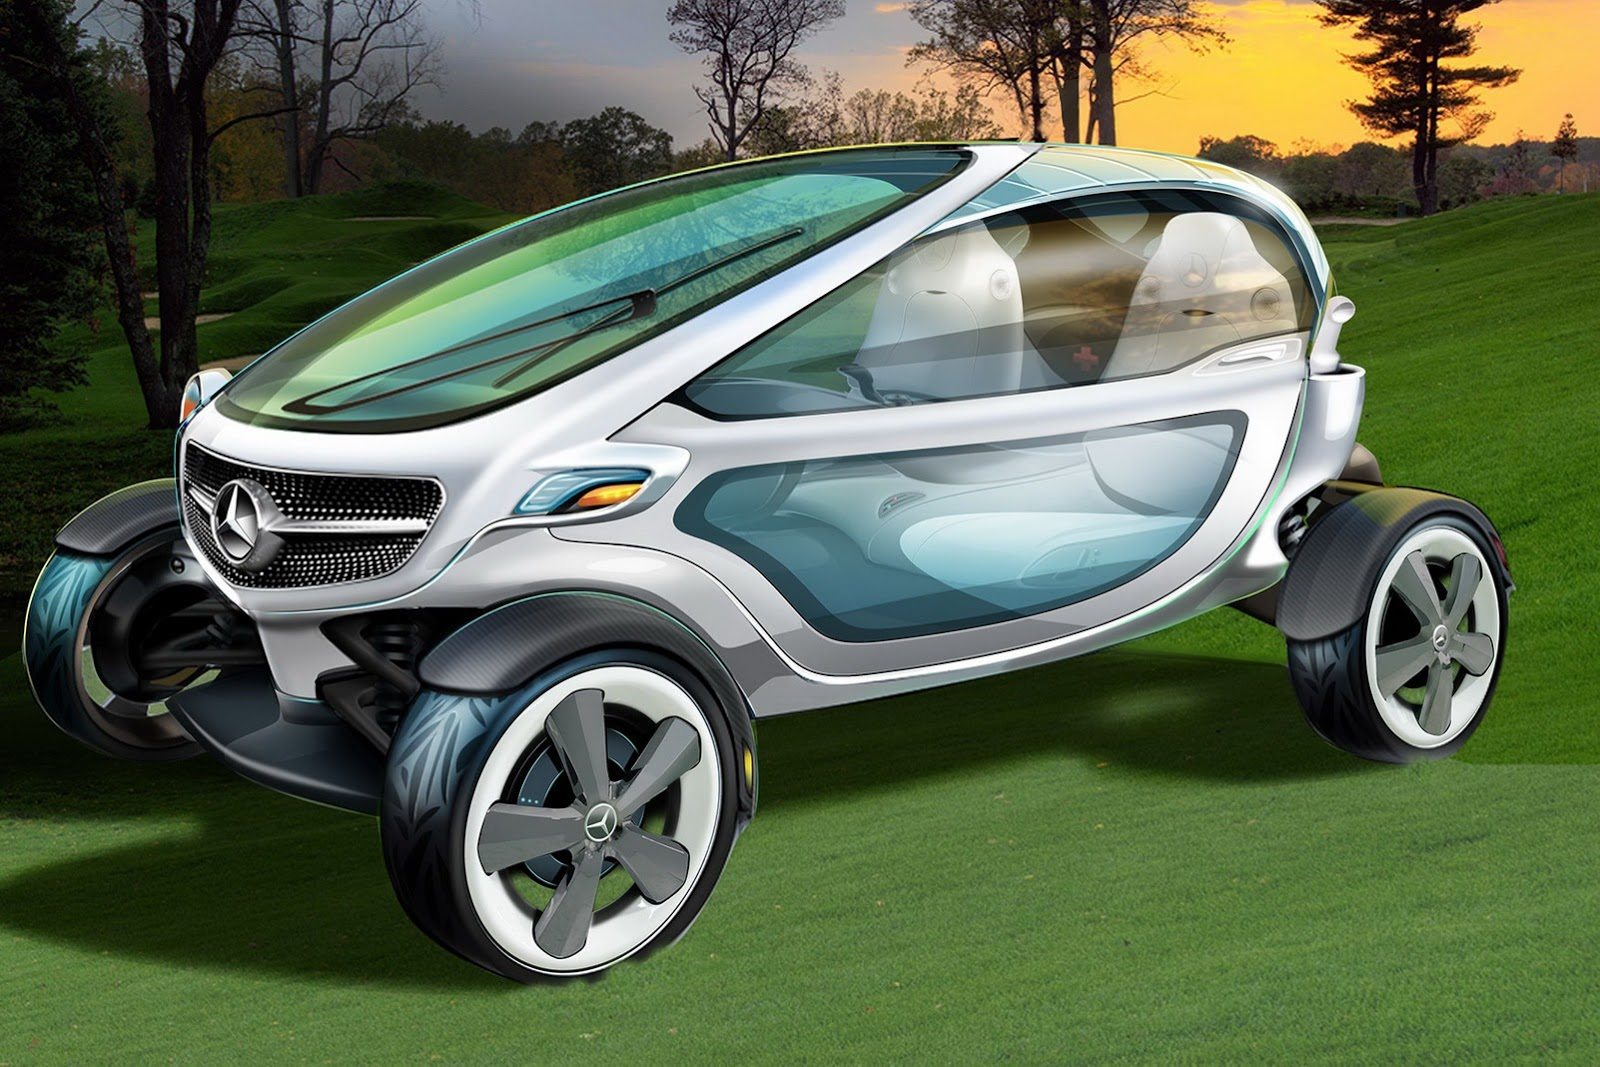 Mercedes benz vision golf cart ps garage automotive for How much is the mercedes benz golf cart